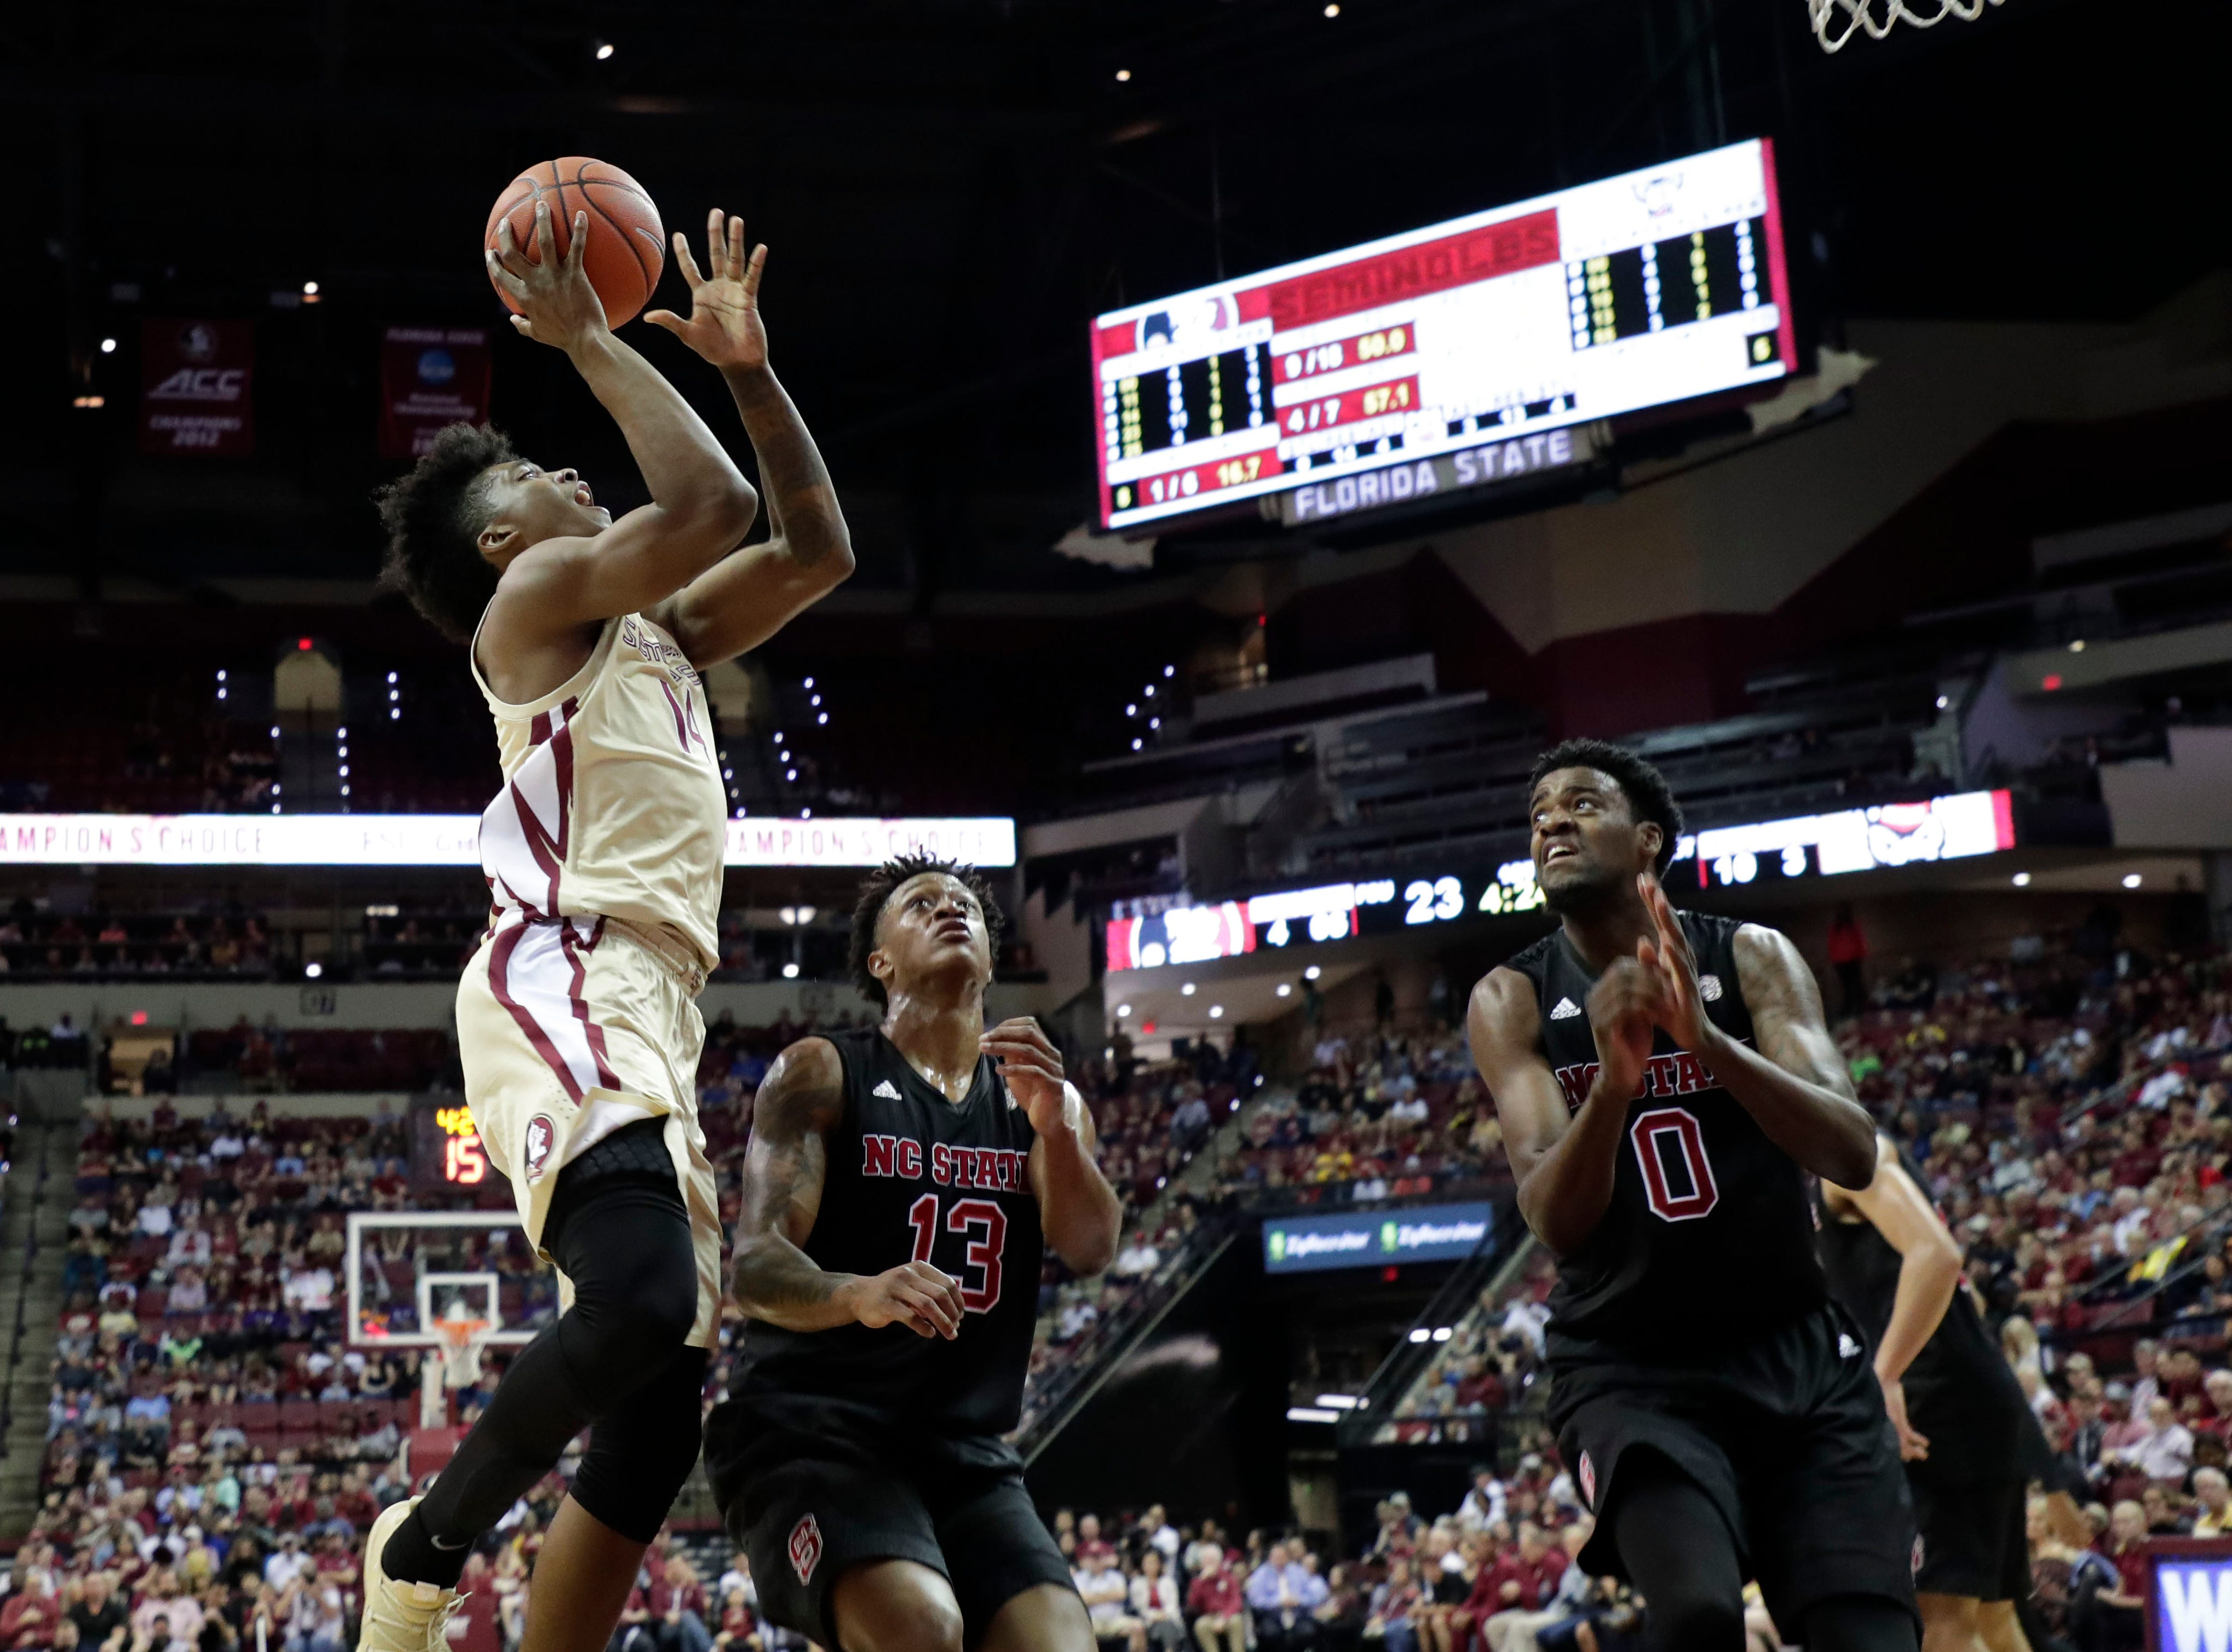 Florida State Seminoles guard Terance Mann (14) shoots from inside the paint. The Florida State Seminoles host the NC State Wolfpack at the Tucker Civic Center Saturday, March 2, 2019.